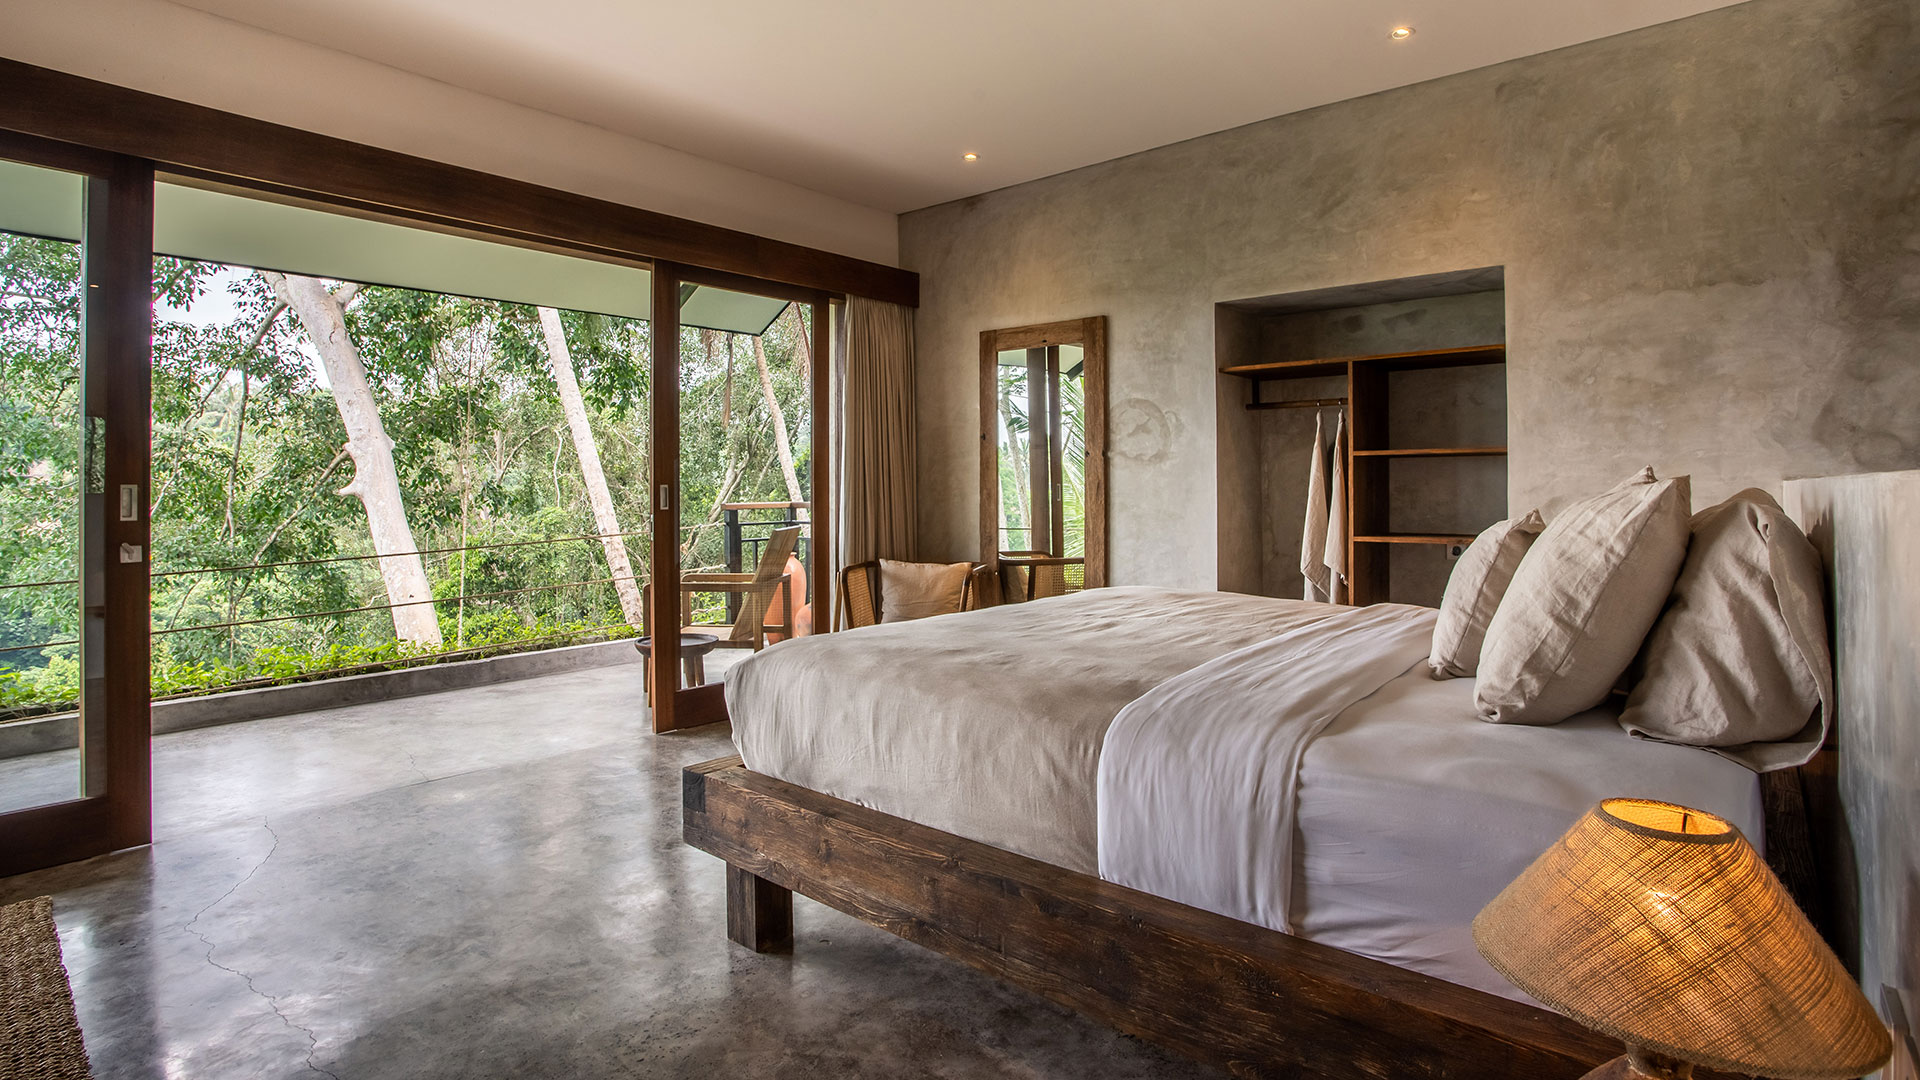 Just like its name, this villa is hiding inside a small alley in a very beautiful village on the outskirts of Ubud. Bedrooms and living room...